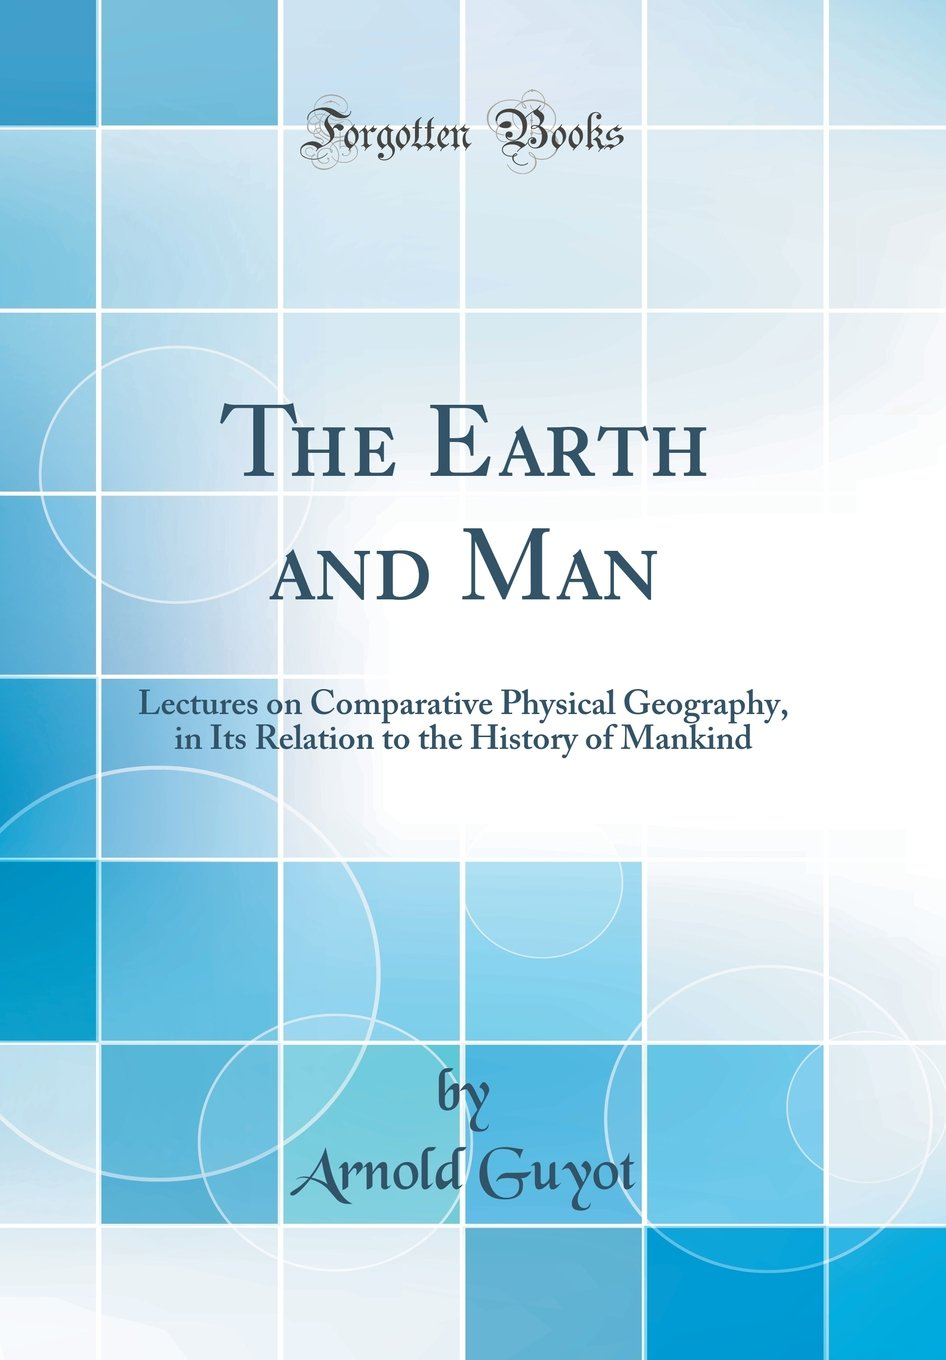 Download The Earth and Man: Lectures on Comparative Physical Geography, in Its Relation to the History of Mankind (Classic Reprint) PDF